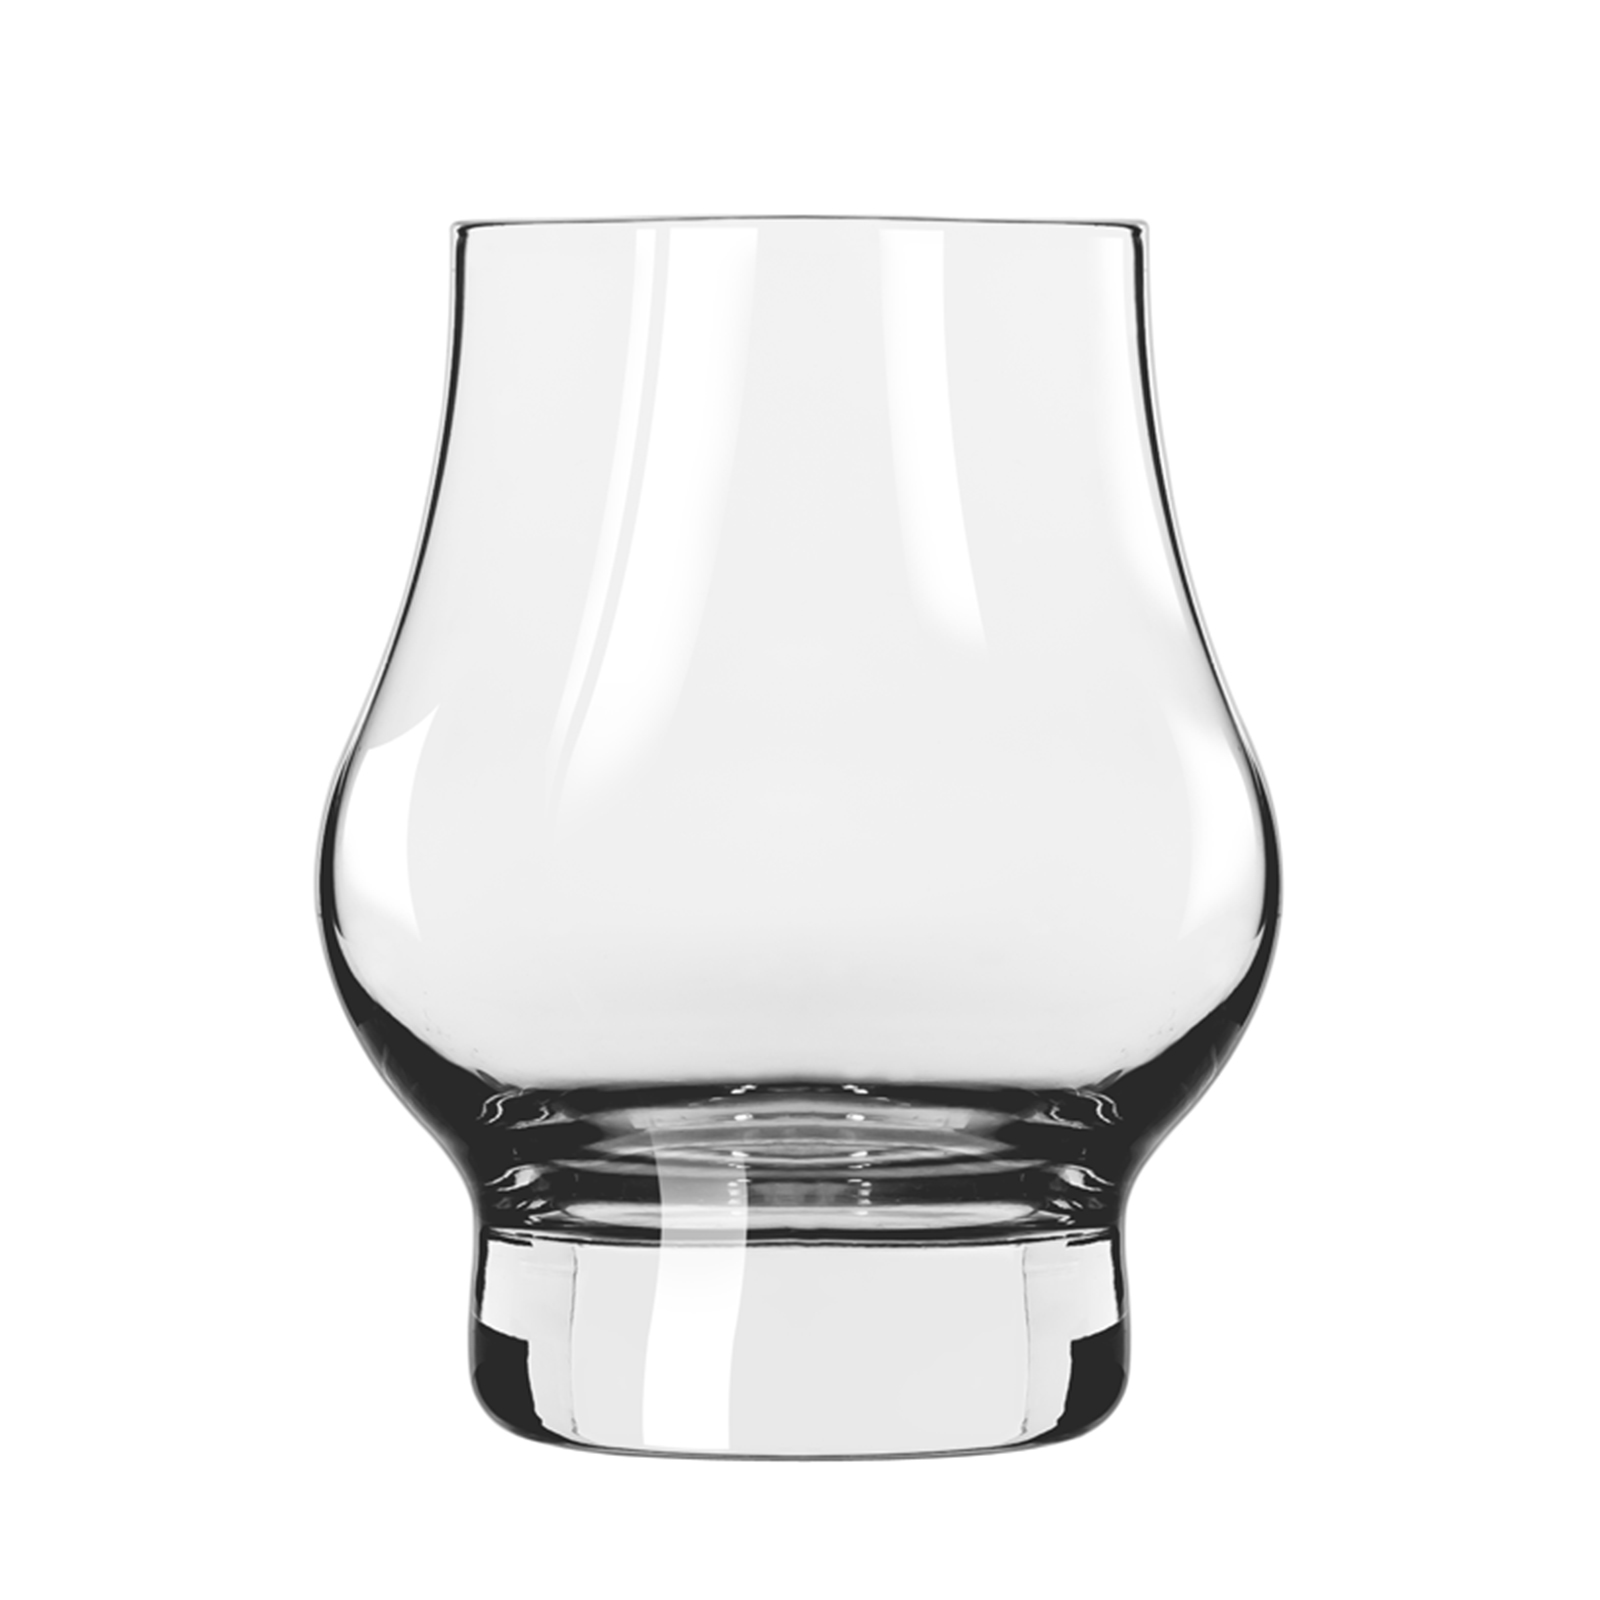 Libbey Glass 9217 glass, old fashioned / rocks